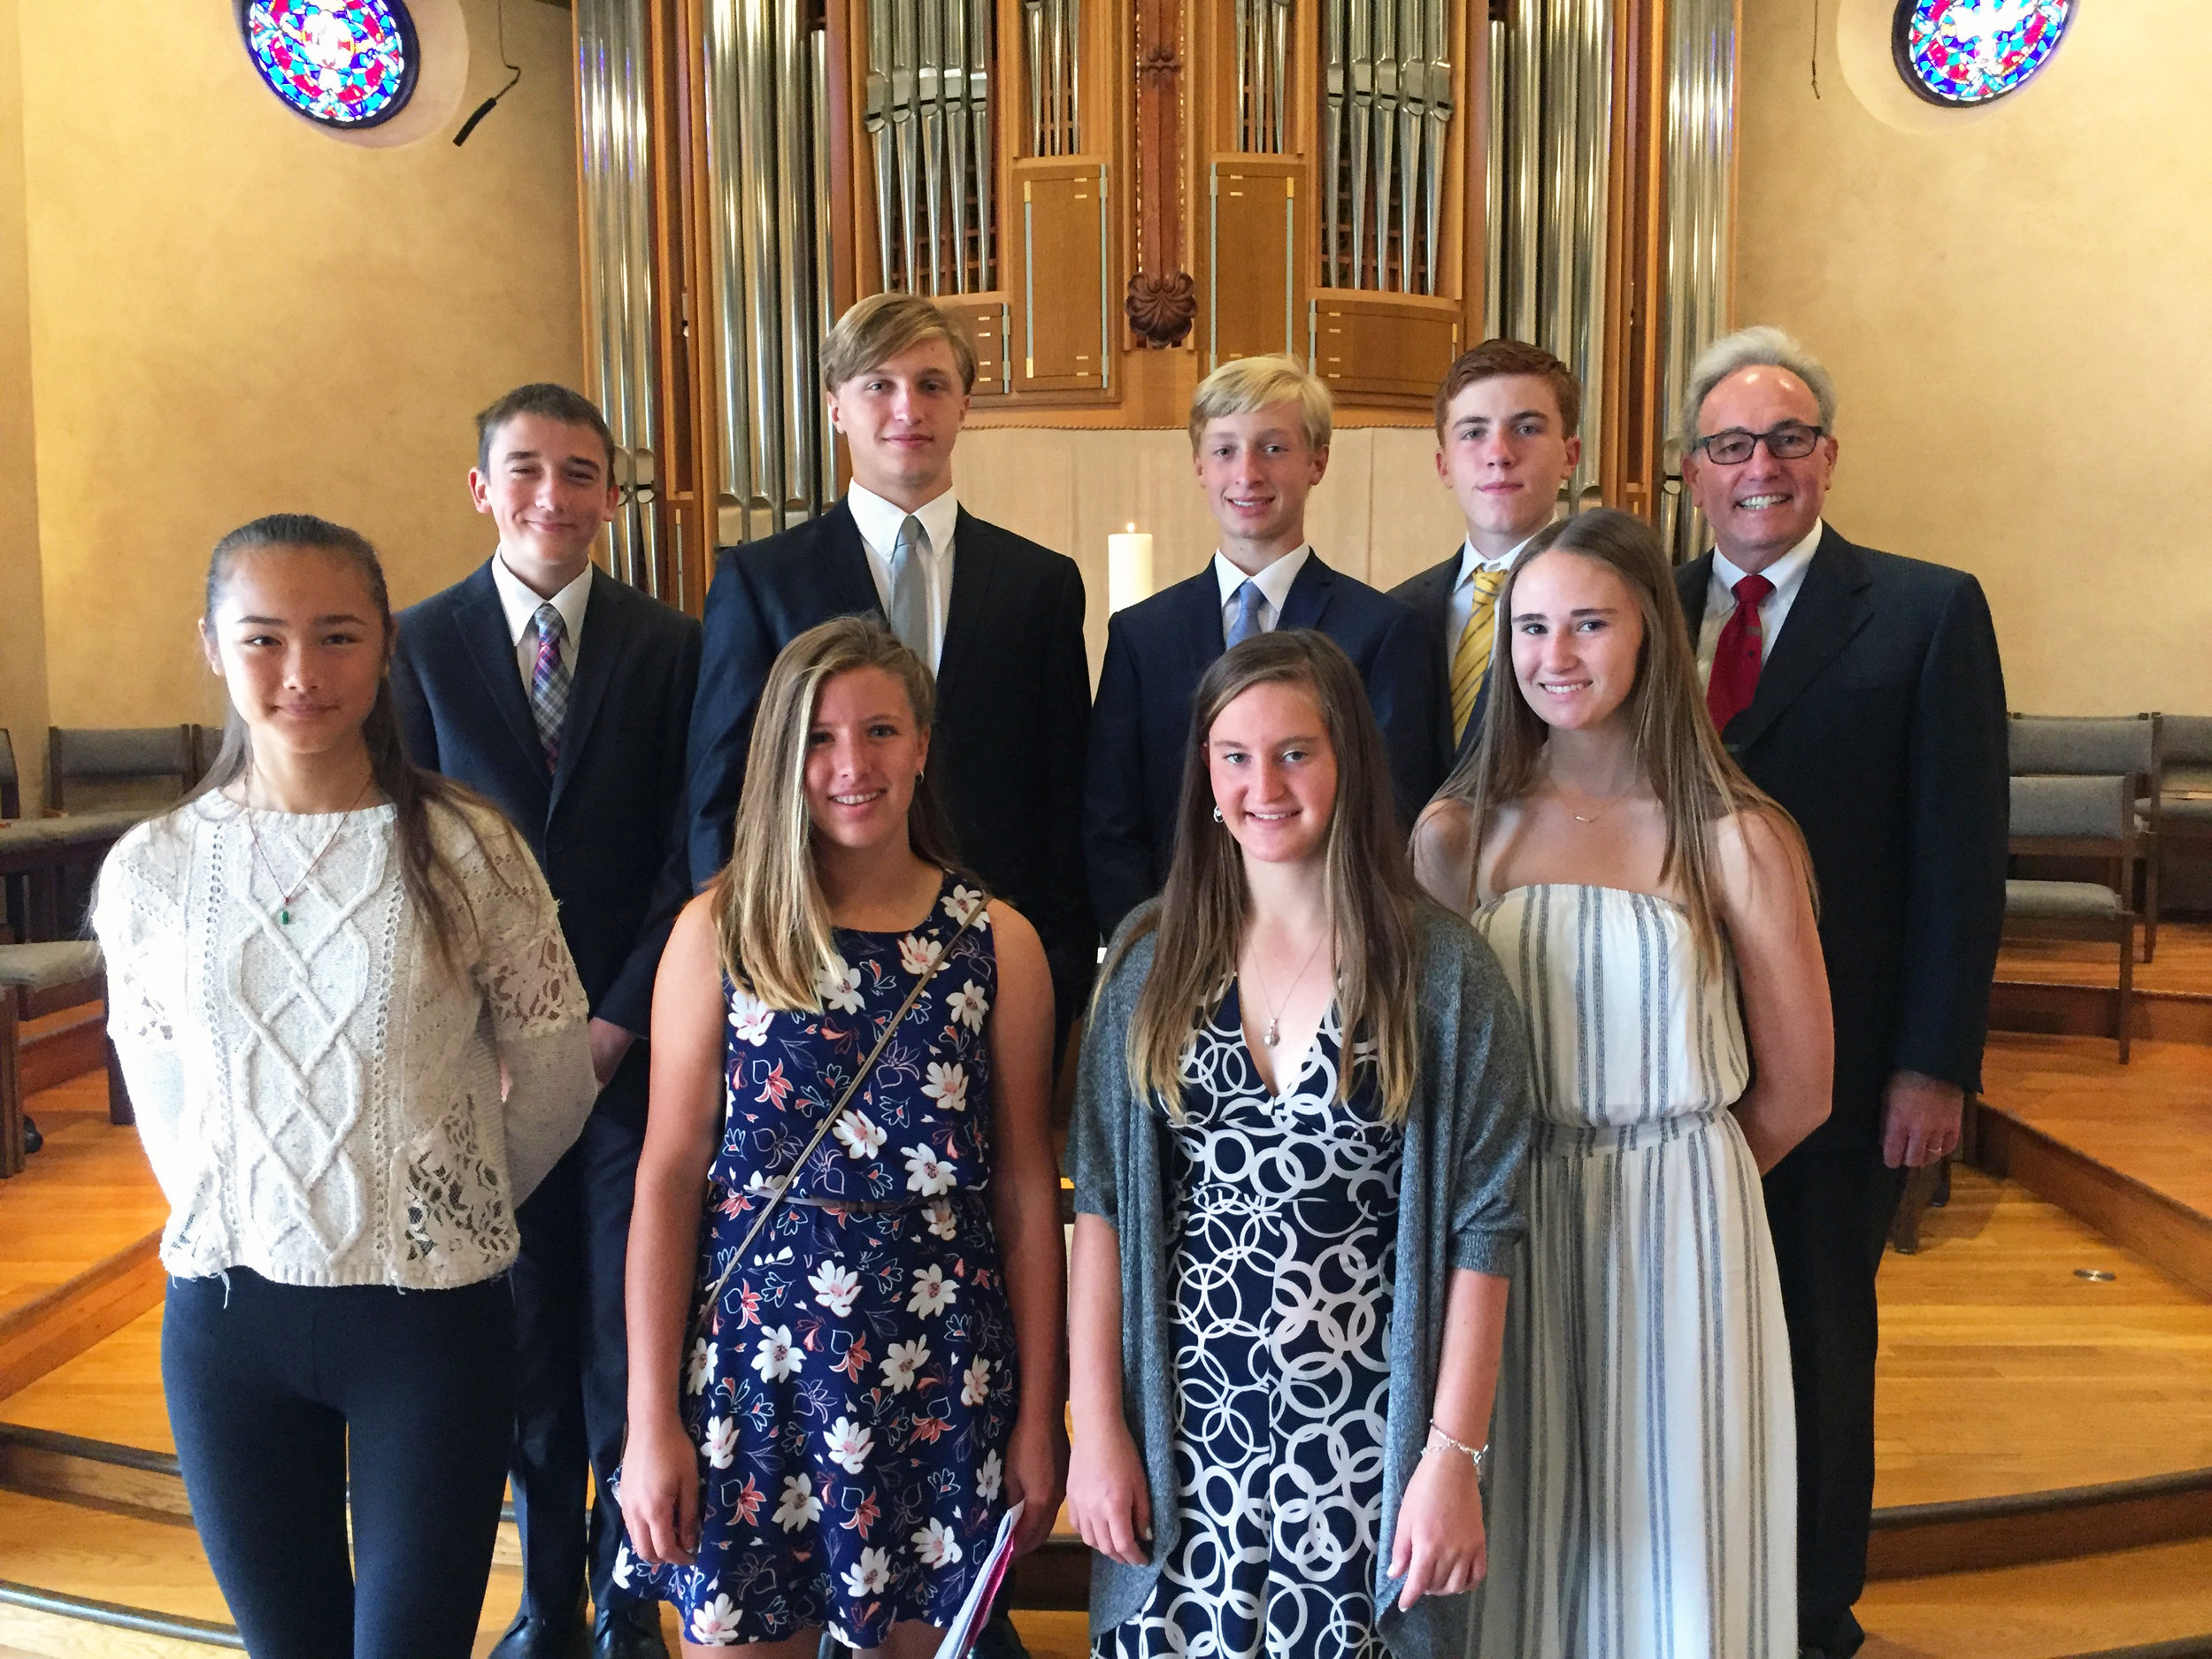 Our 2017 Confirmand Class and Rev. Dr. David D. Young.